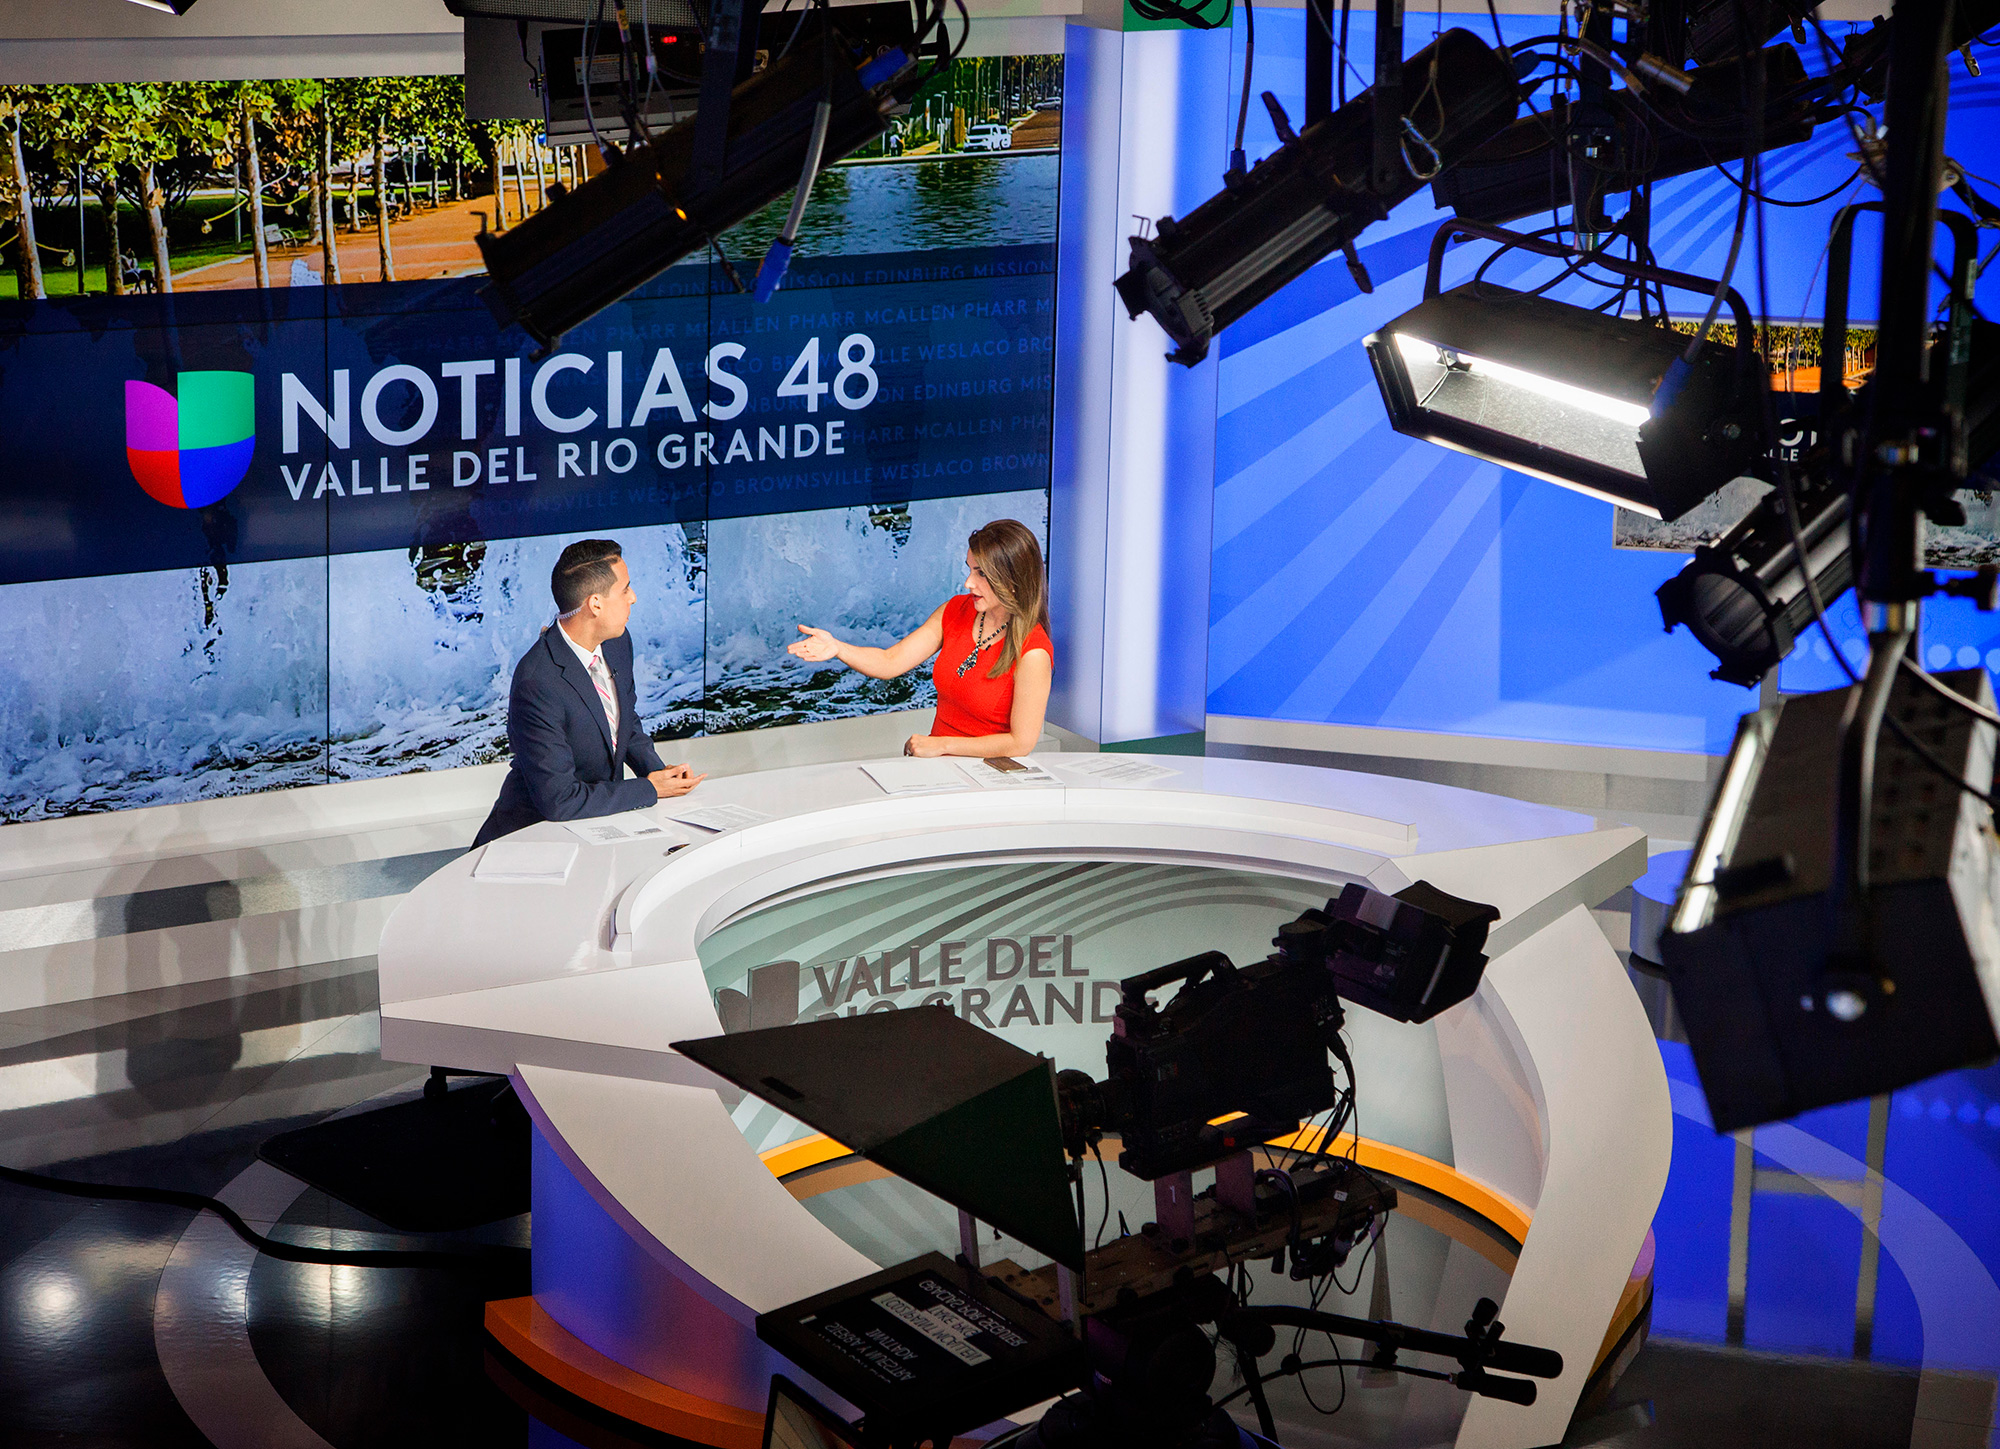 Paula_Giraldo_Noticiasya_set_6.jpg